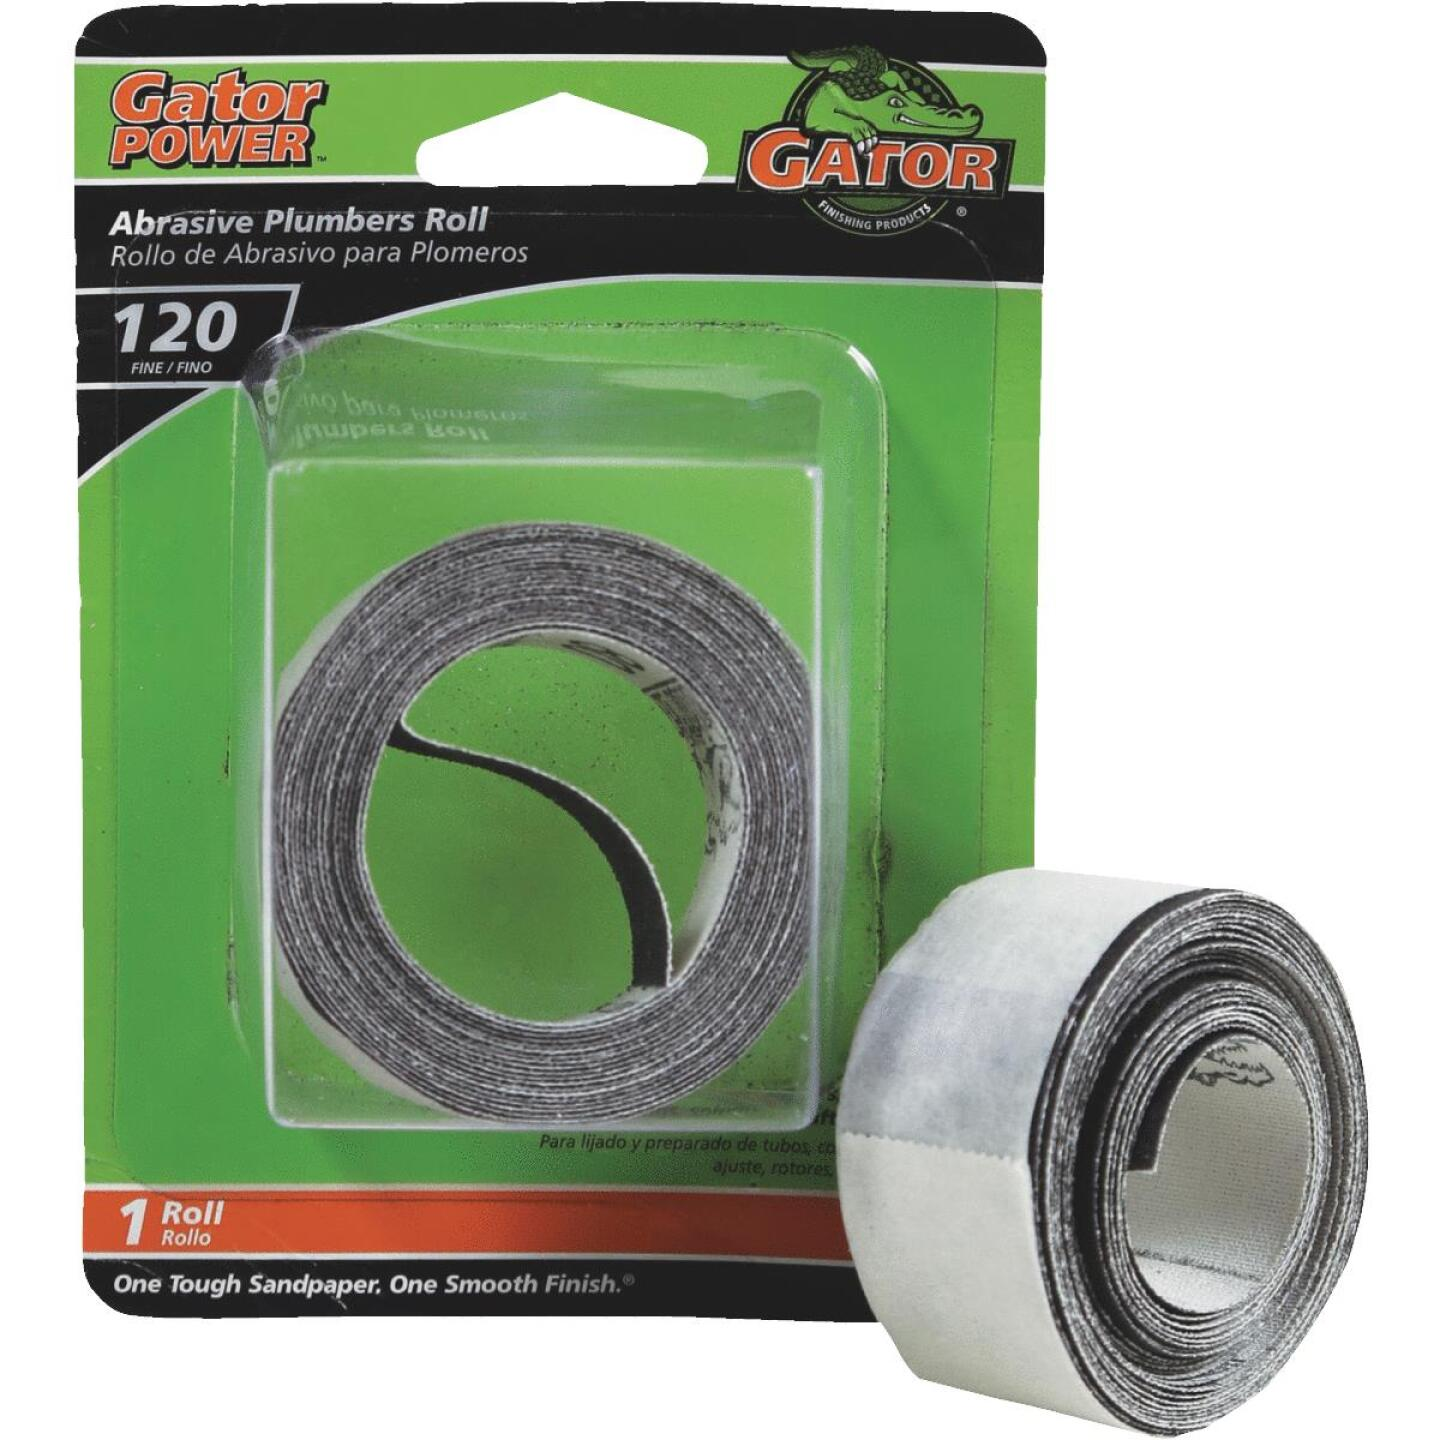 Gator 1 In. x 10 Ft. 120-Grit Plumber's Abrasive Sand Cloth Image 1